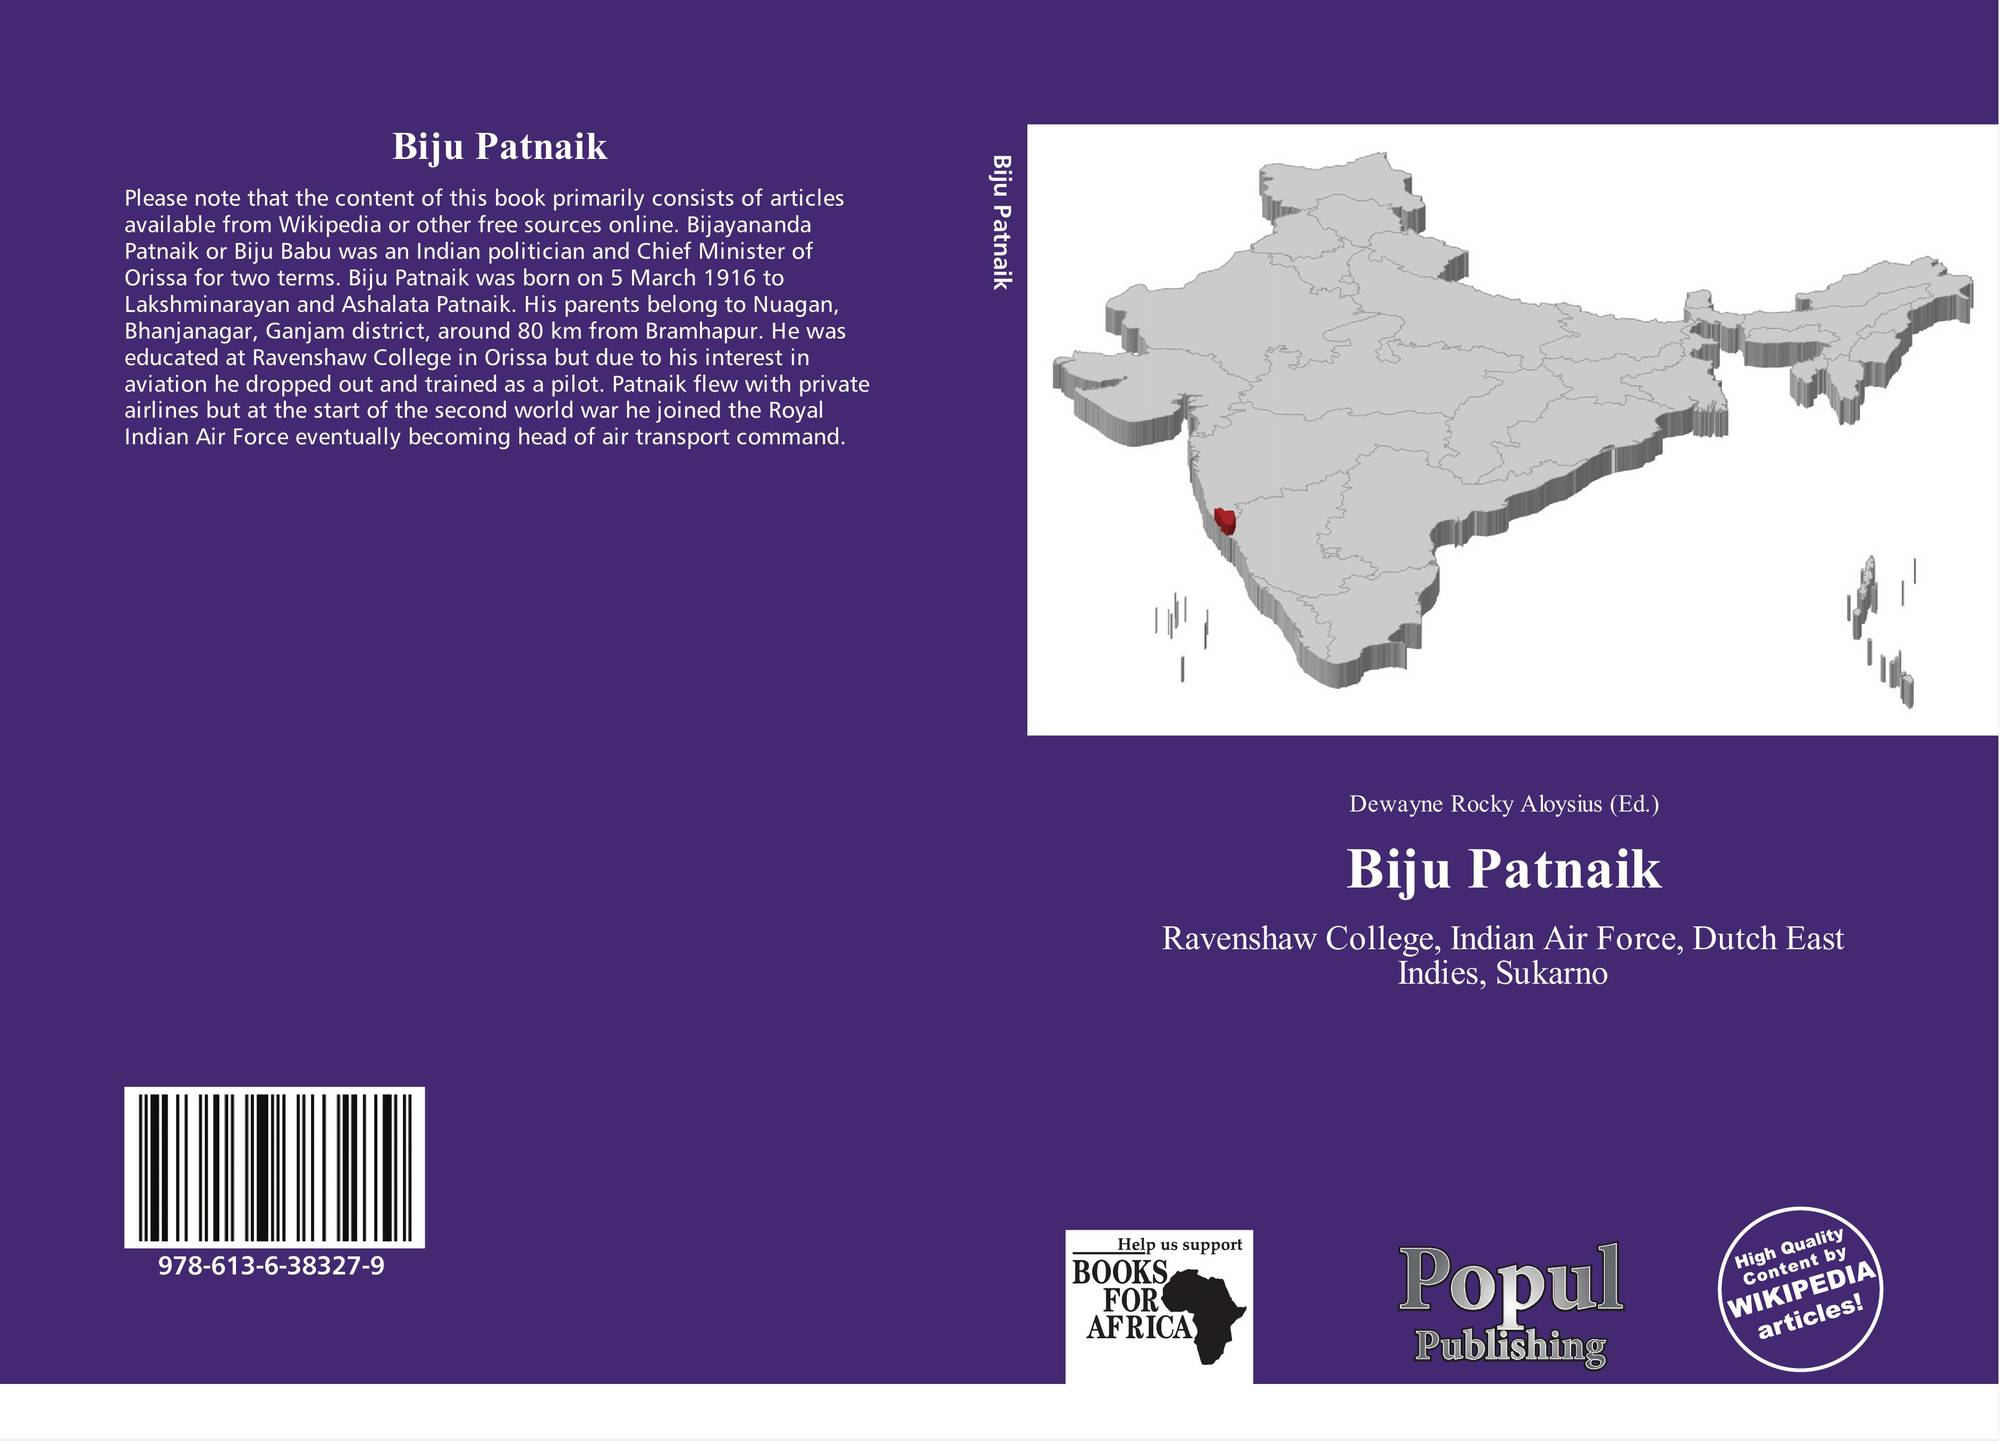 rhetorical passage on biju patnaik A two-time chief minister of odisha and one of the most prominent leaders from the state, biju patnaik was known for his unconventional ways to dealing with problems, a rare attribute among the politicians of india.